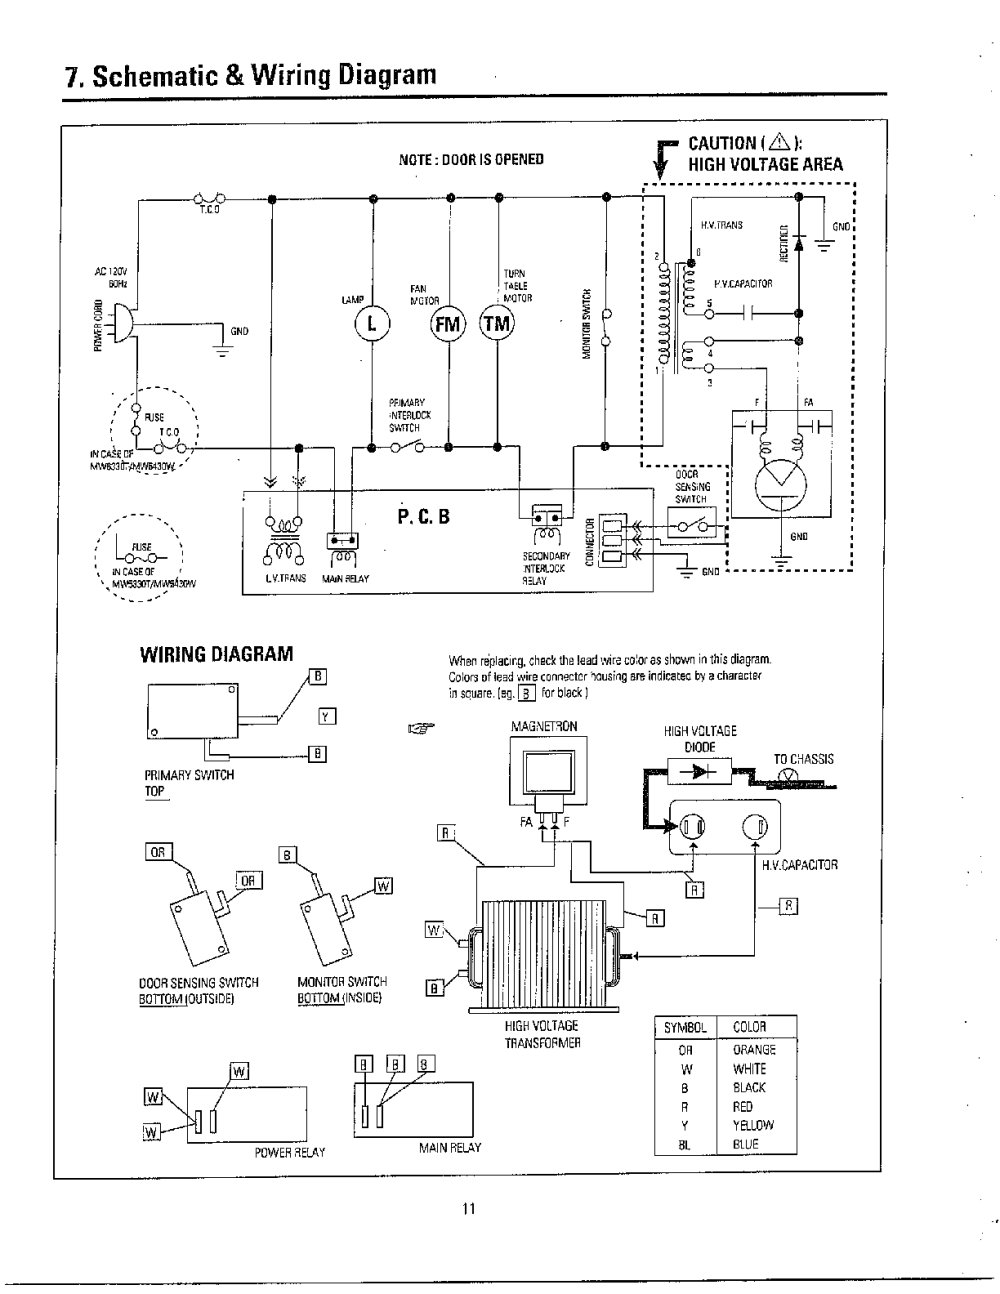 medium resolution of emerson microwave wiring diagram on emerson microwave wiring diagram diagram of 2003 bf225a3 xa honda outboard fuel pipe injector diagram